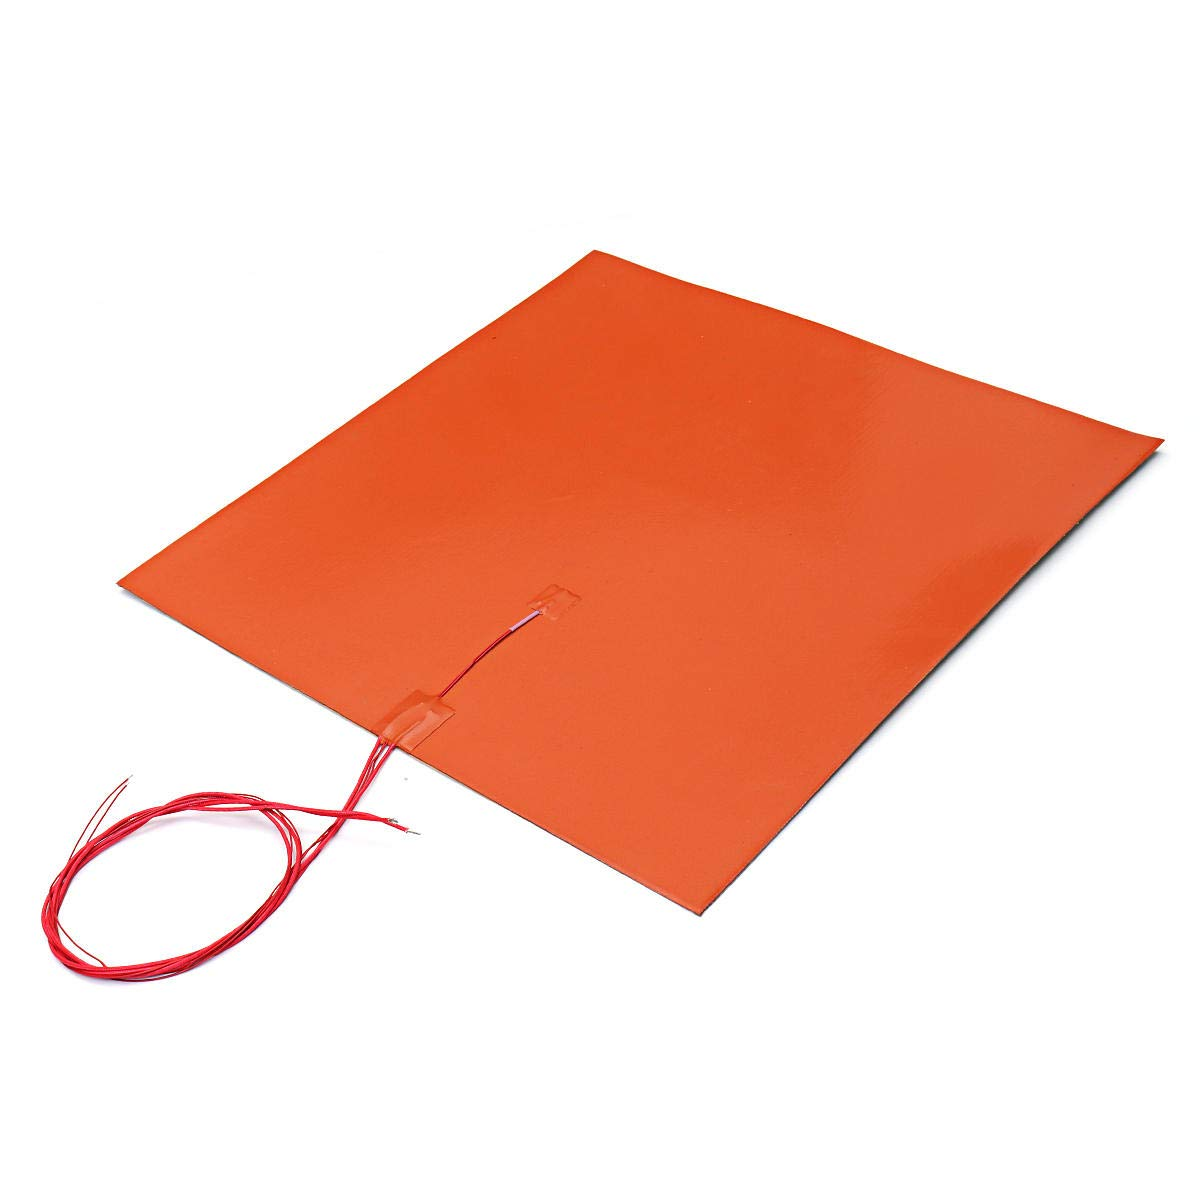 110v 1400W 500 * 500mm Silicone Heated Bed Heating Pad for 3D Printer Aluck 55995295174